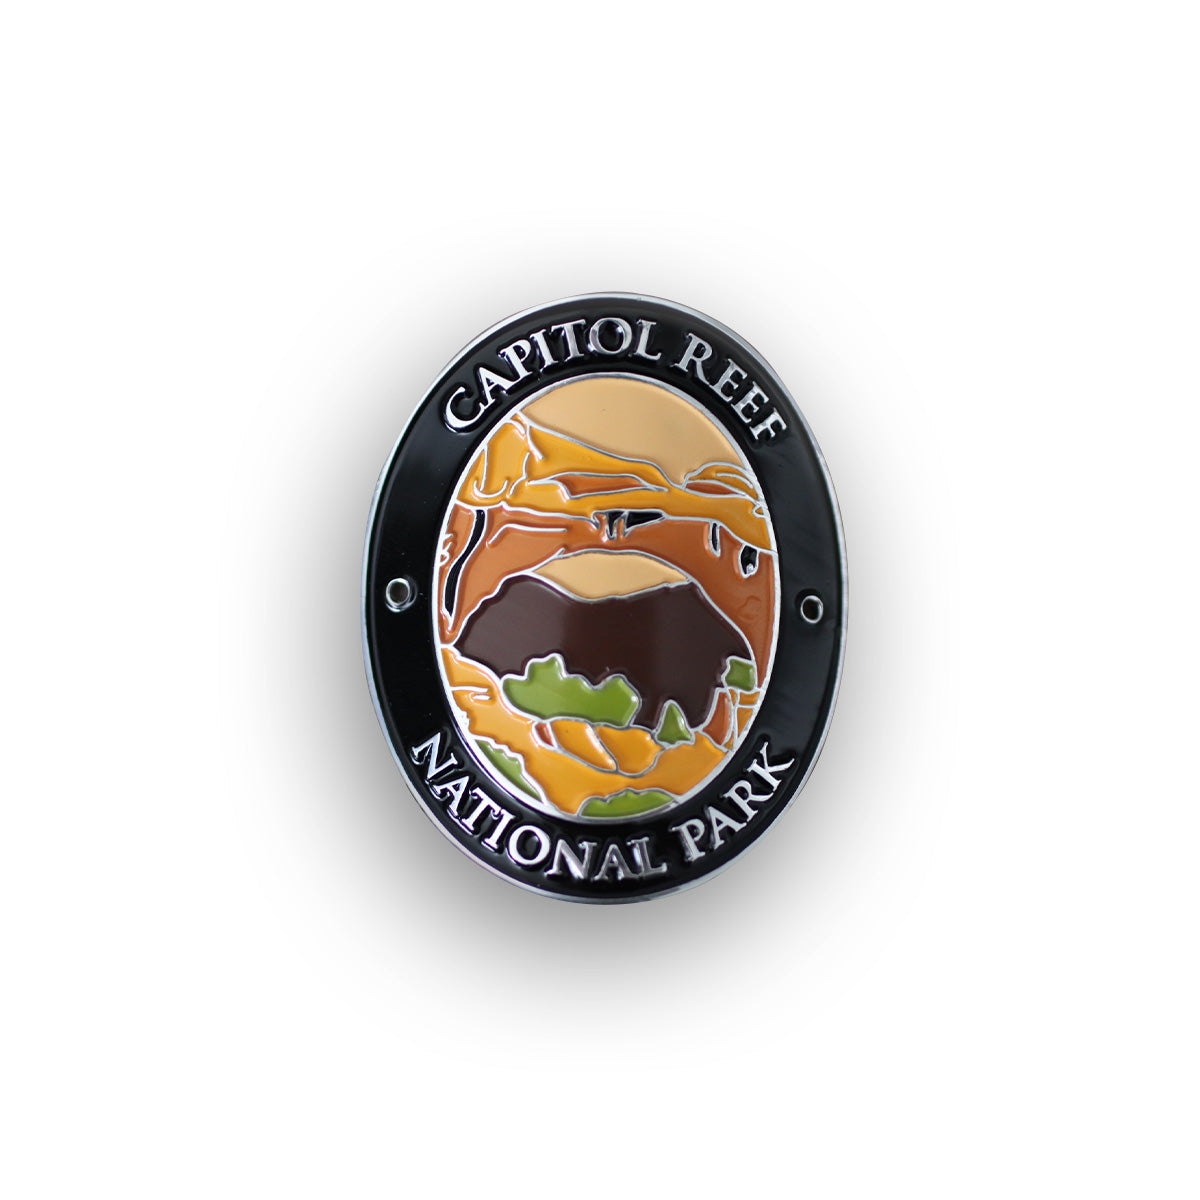 Capitol Reef National Park Traveler Walking Stick Medallion